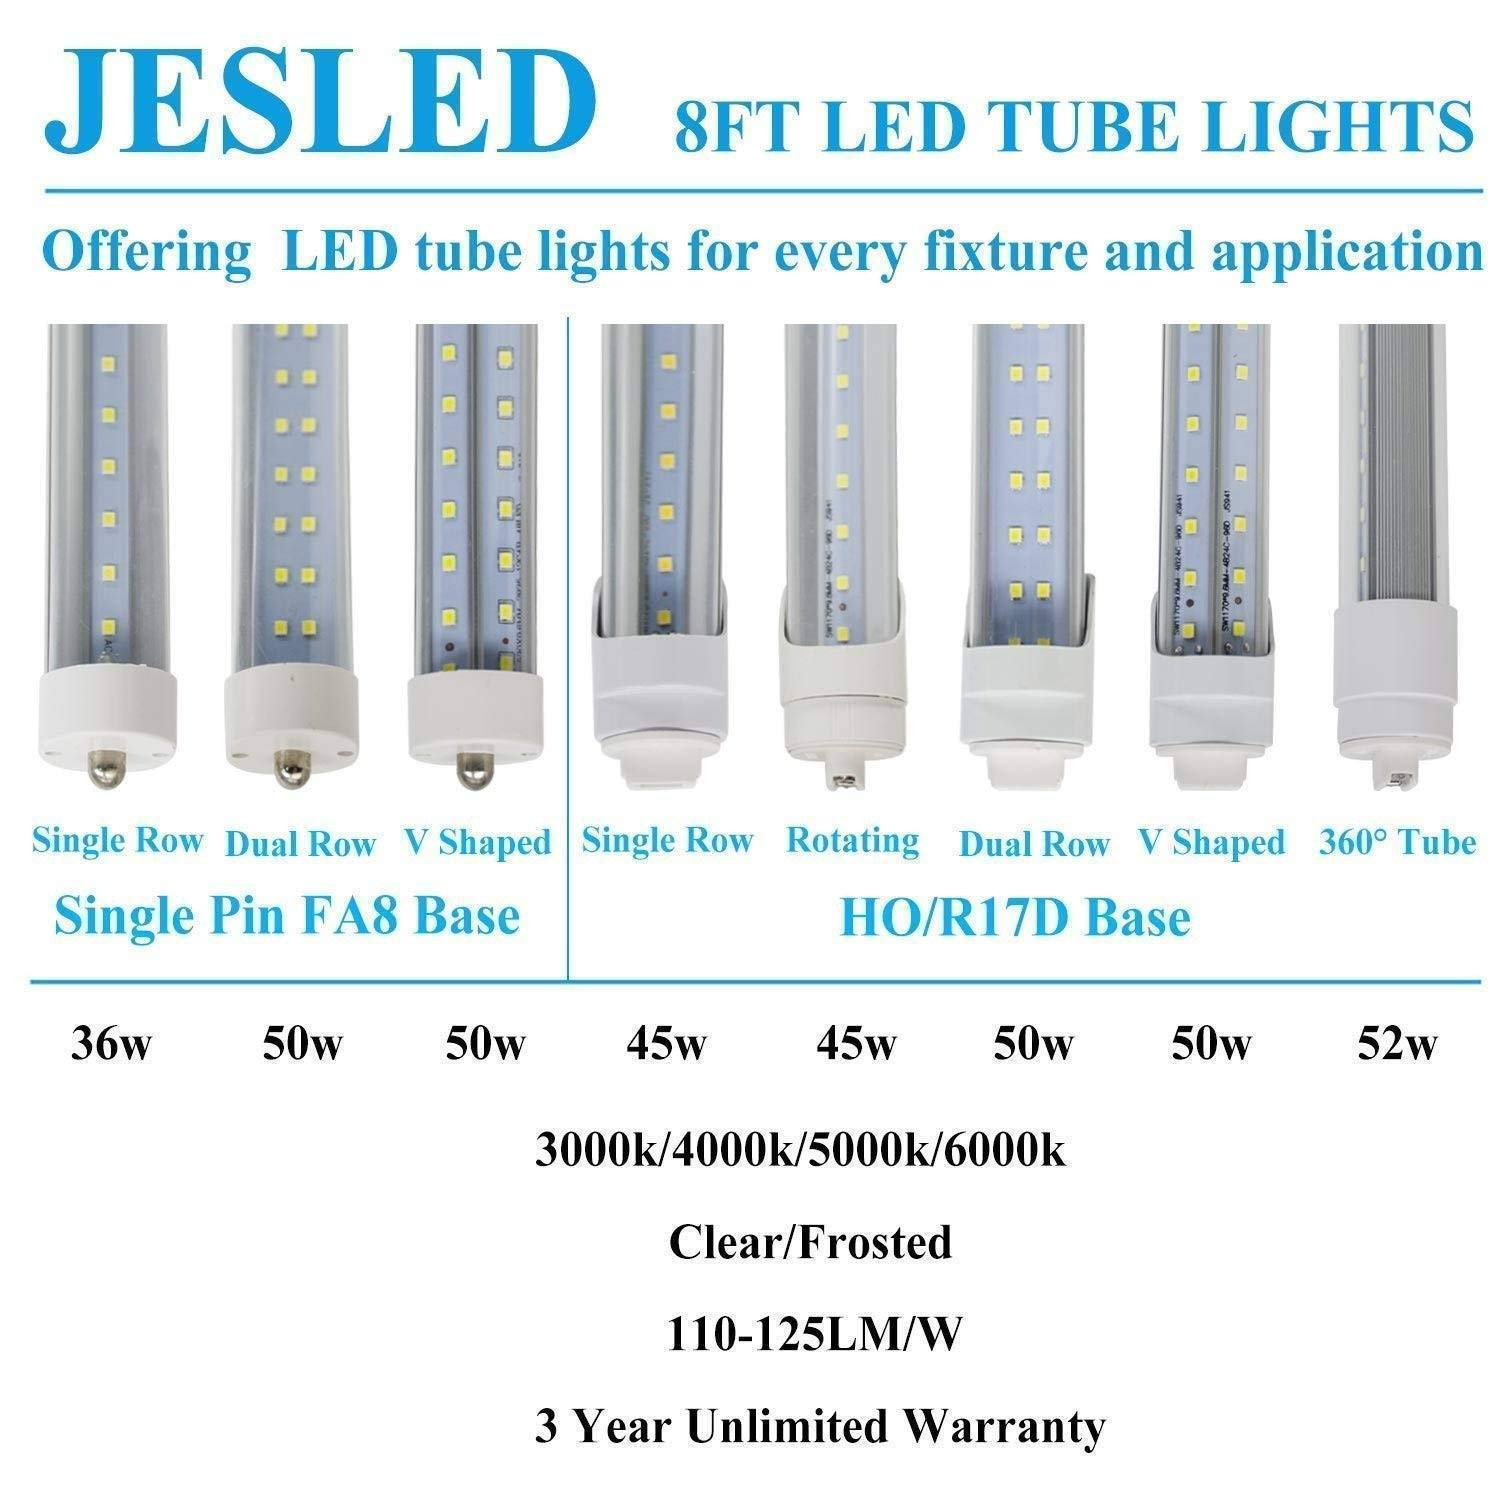 JESLED R17D/HO 8FT LED Bulb - Rotate V shaped, 5000K Daylight 50W, 6750LM, 110W Equivalent F96T12/DW/HO, Clear Cover, T8/T10/T12 Replacement, Dual-Ended Powered, Ballast Bypass, Pack of 12 by JESLED (Image #8)